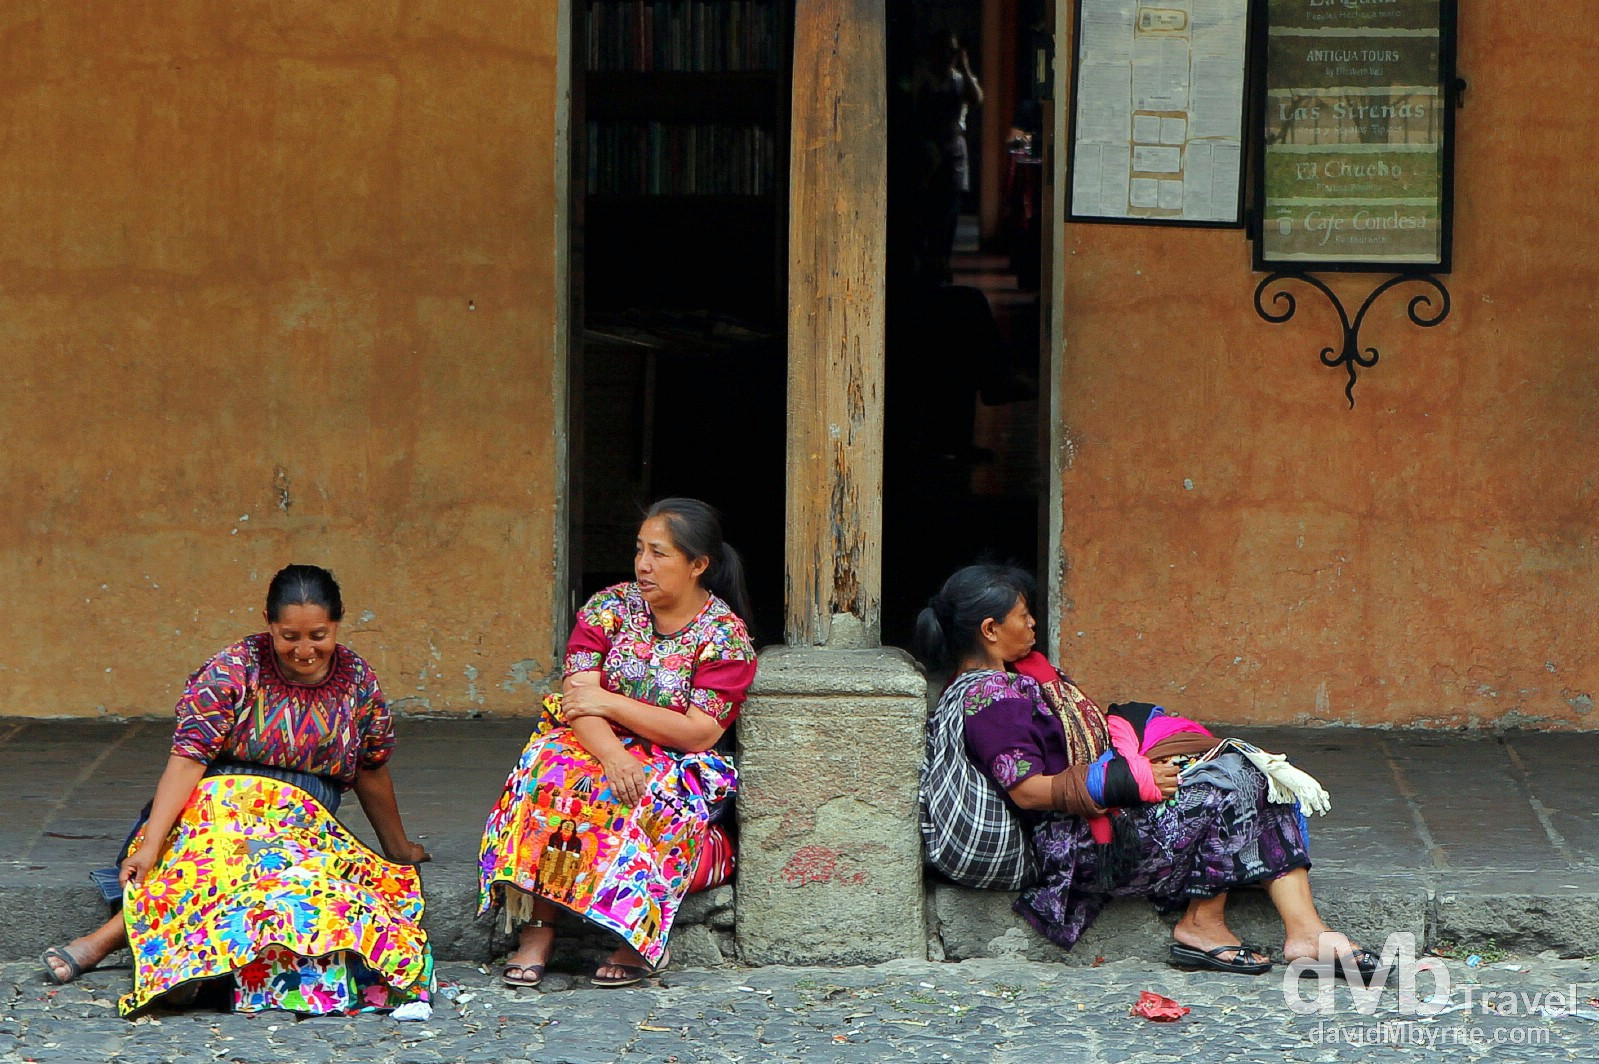 Three Mayan ladies taking a break from peddling their wares by the edge of Parque Central, Antigua, Guatemala. May 19th 2013.